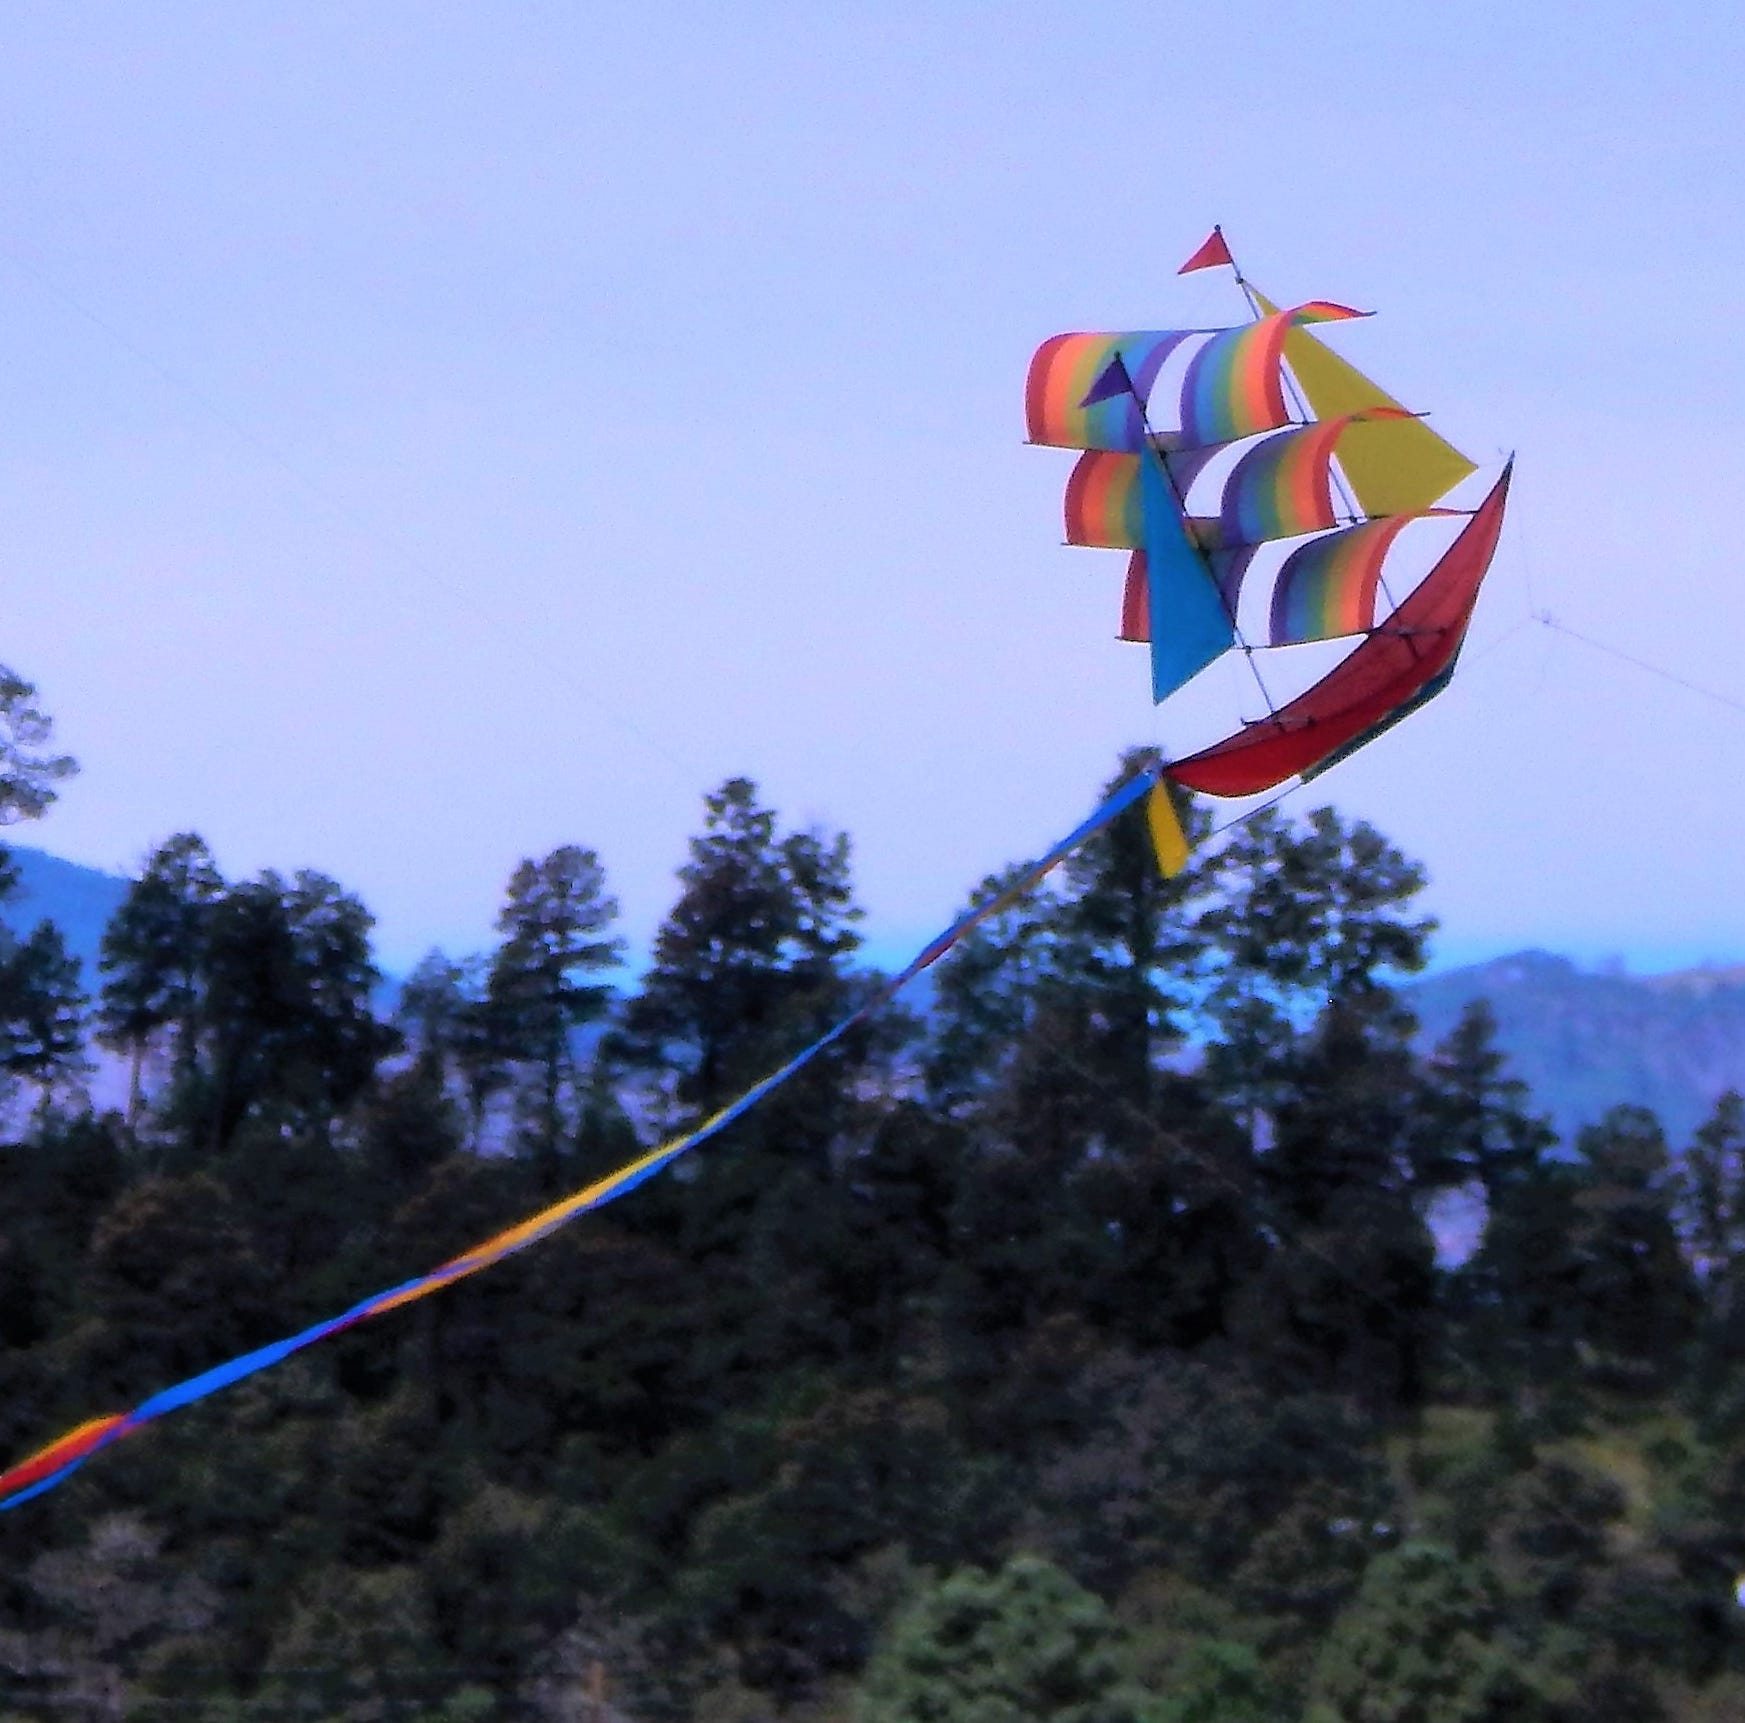 Kites will soar among the winds in the Sacramento Mountains